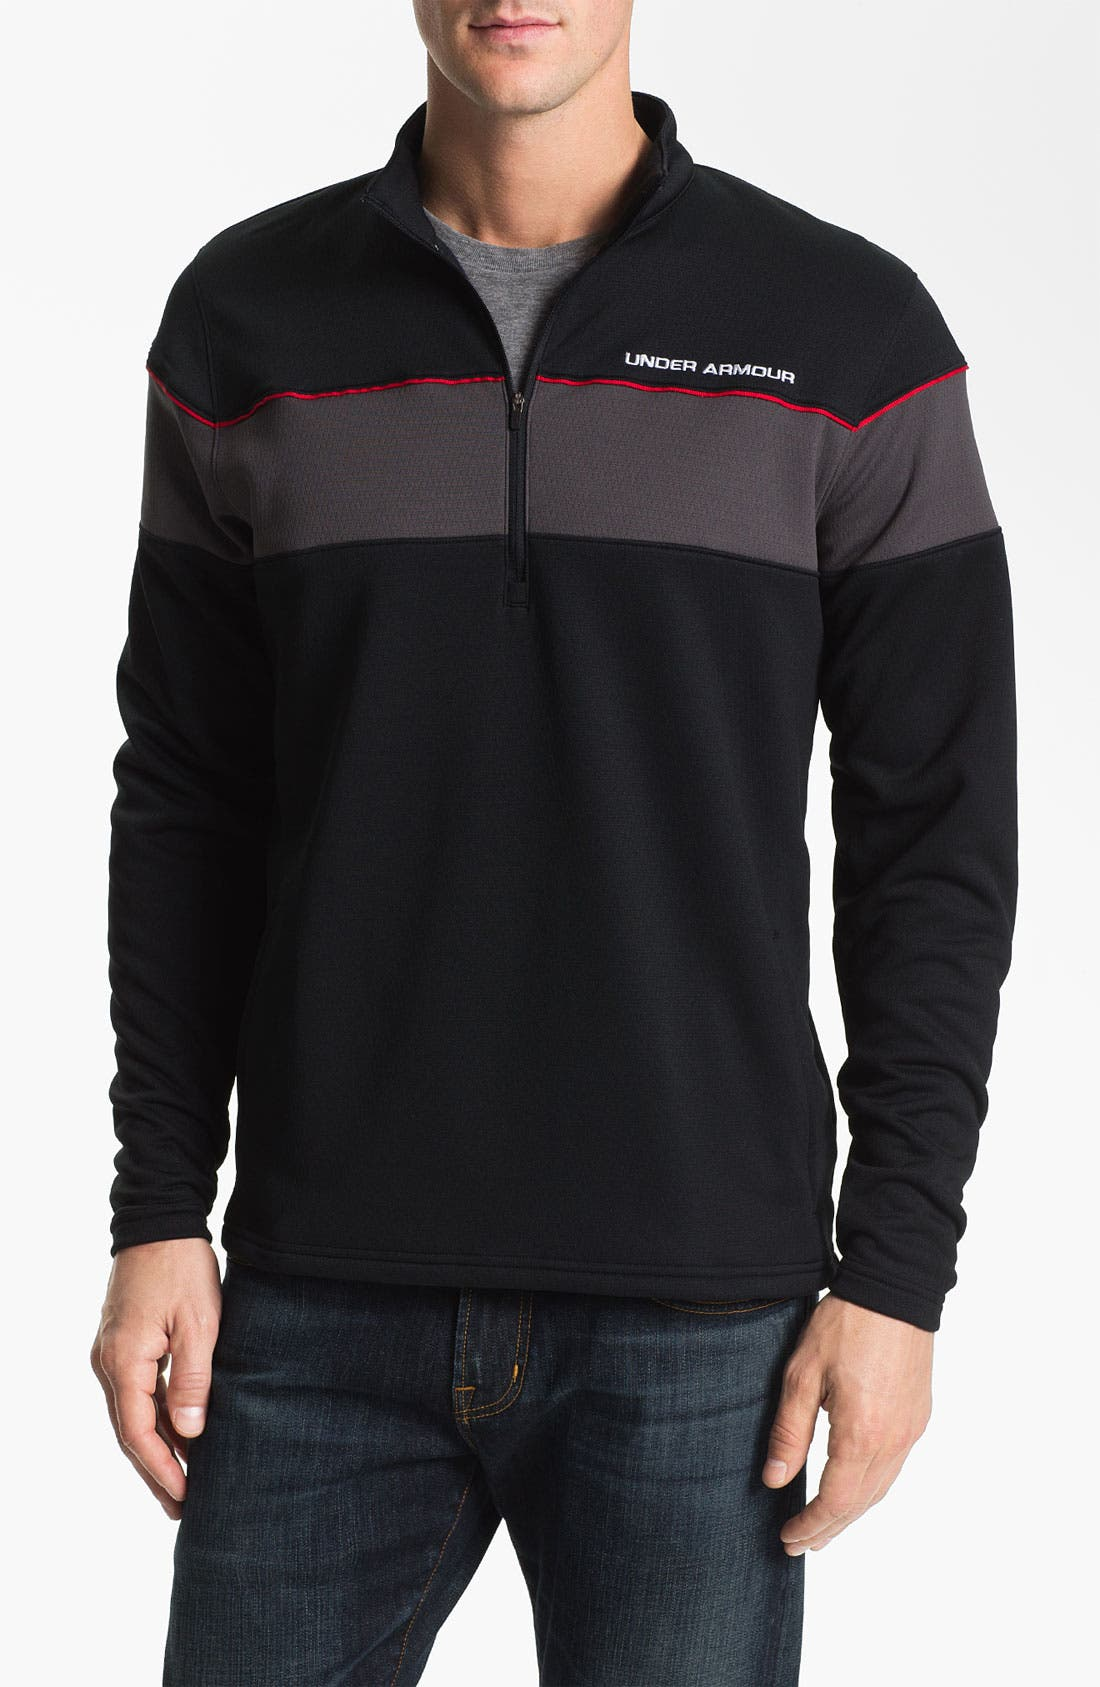 Alternate Image 1 Selected - Under Armour 'Focus 4.0' Quarter Zip Jacket